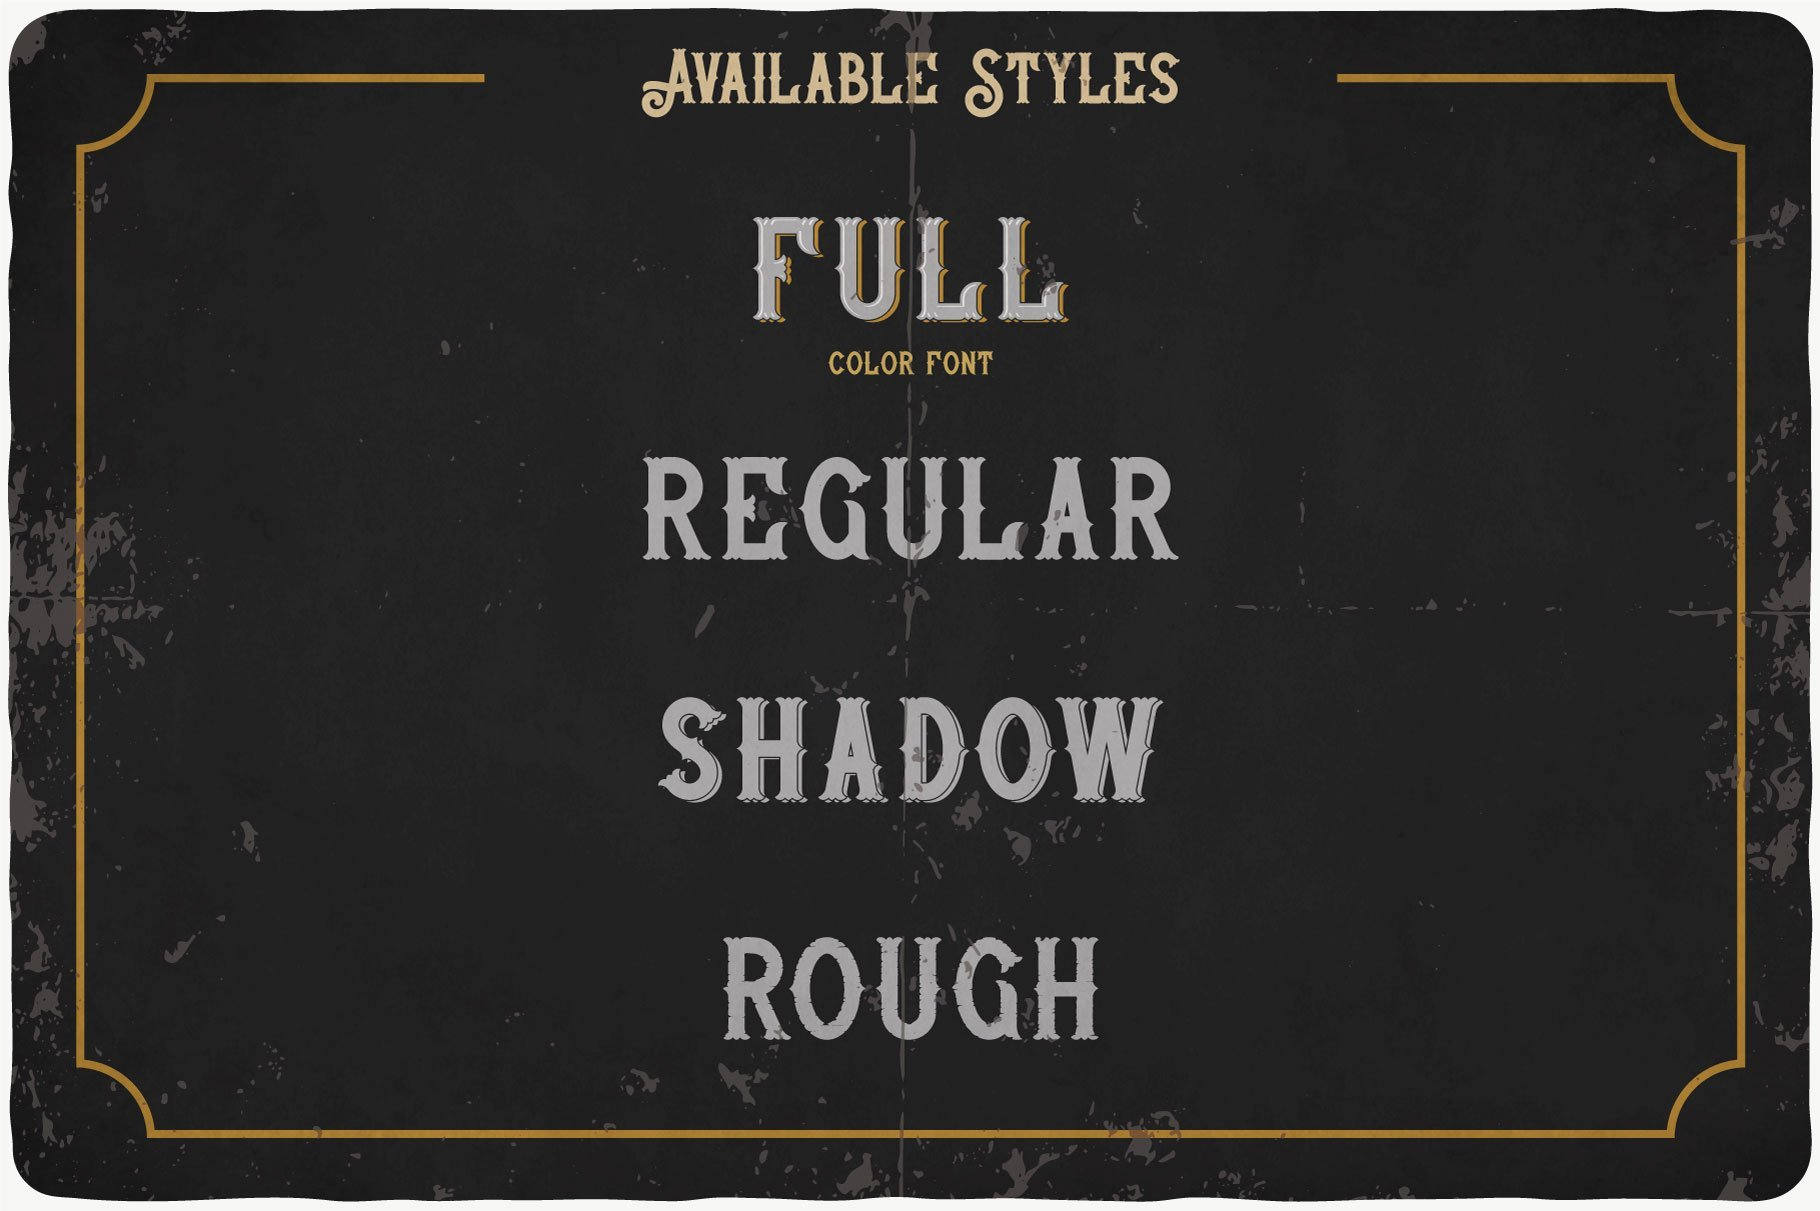 Whiskey Stones Typeface available styles.